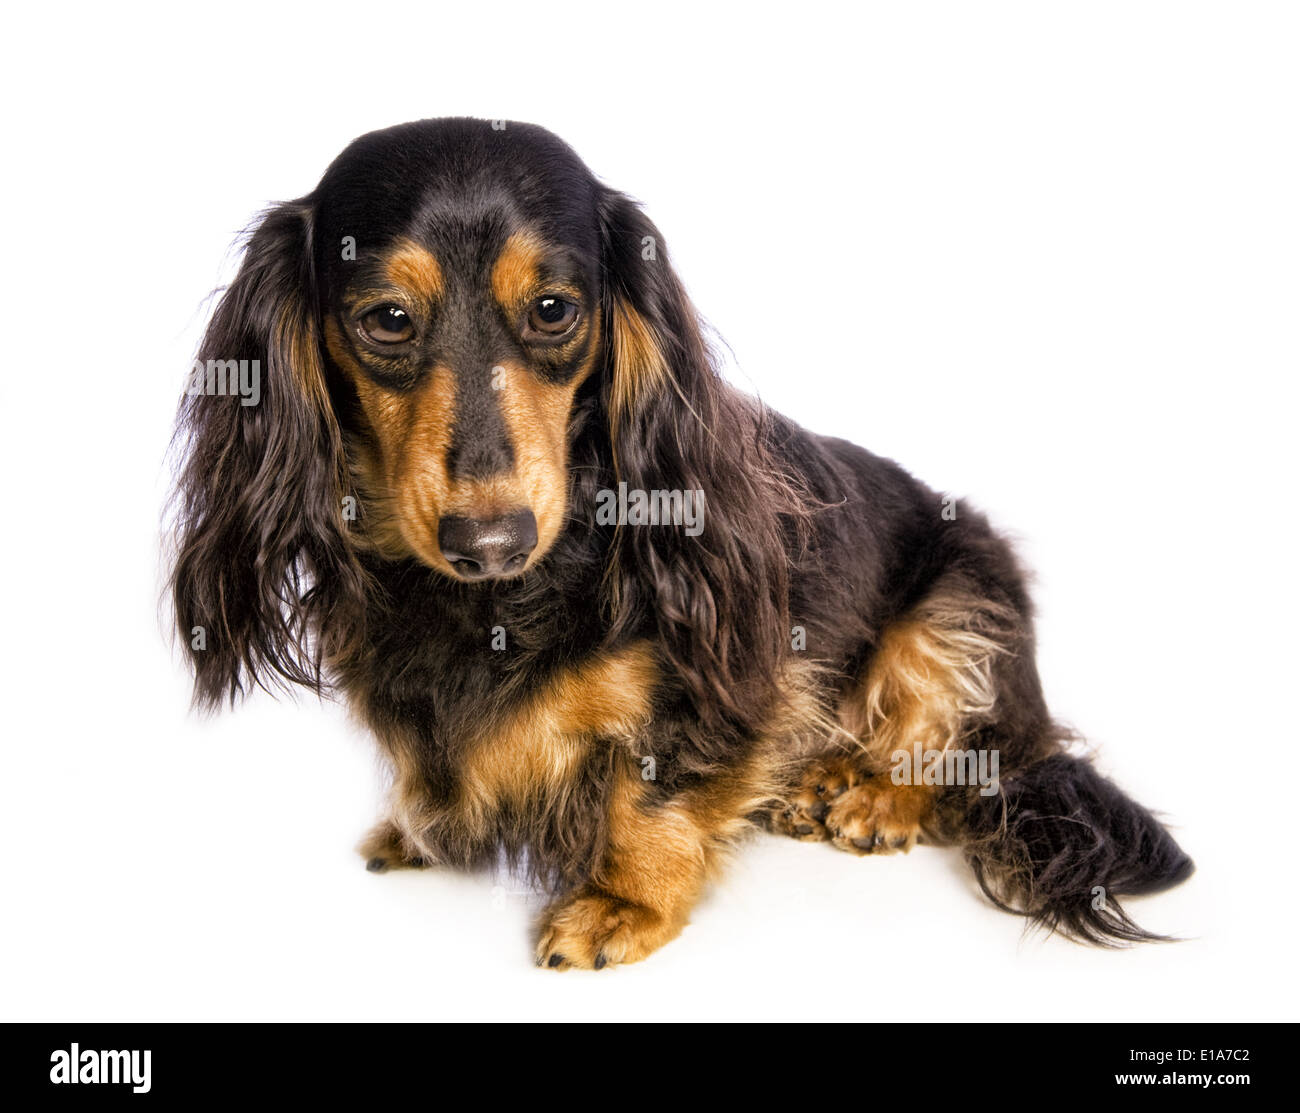 Black and tan long haired dachshund sitting to the side with sad big eyes isolated on white background - Stock Image